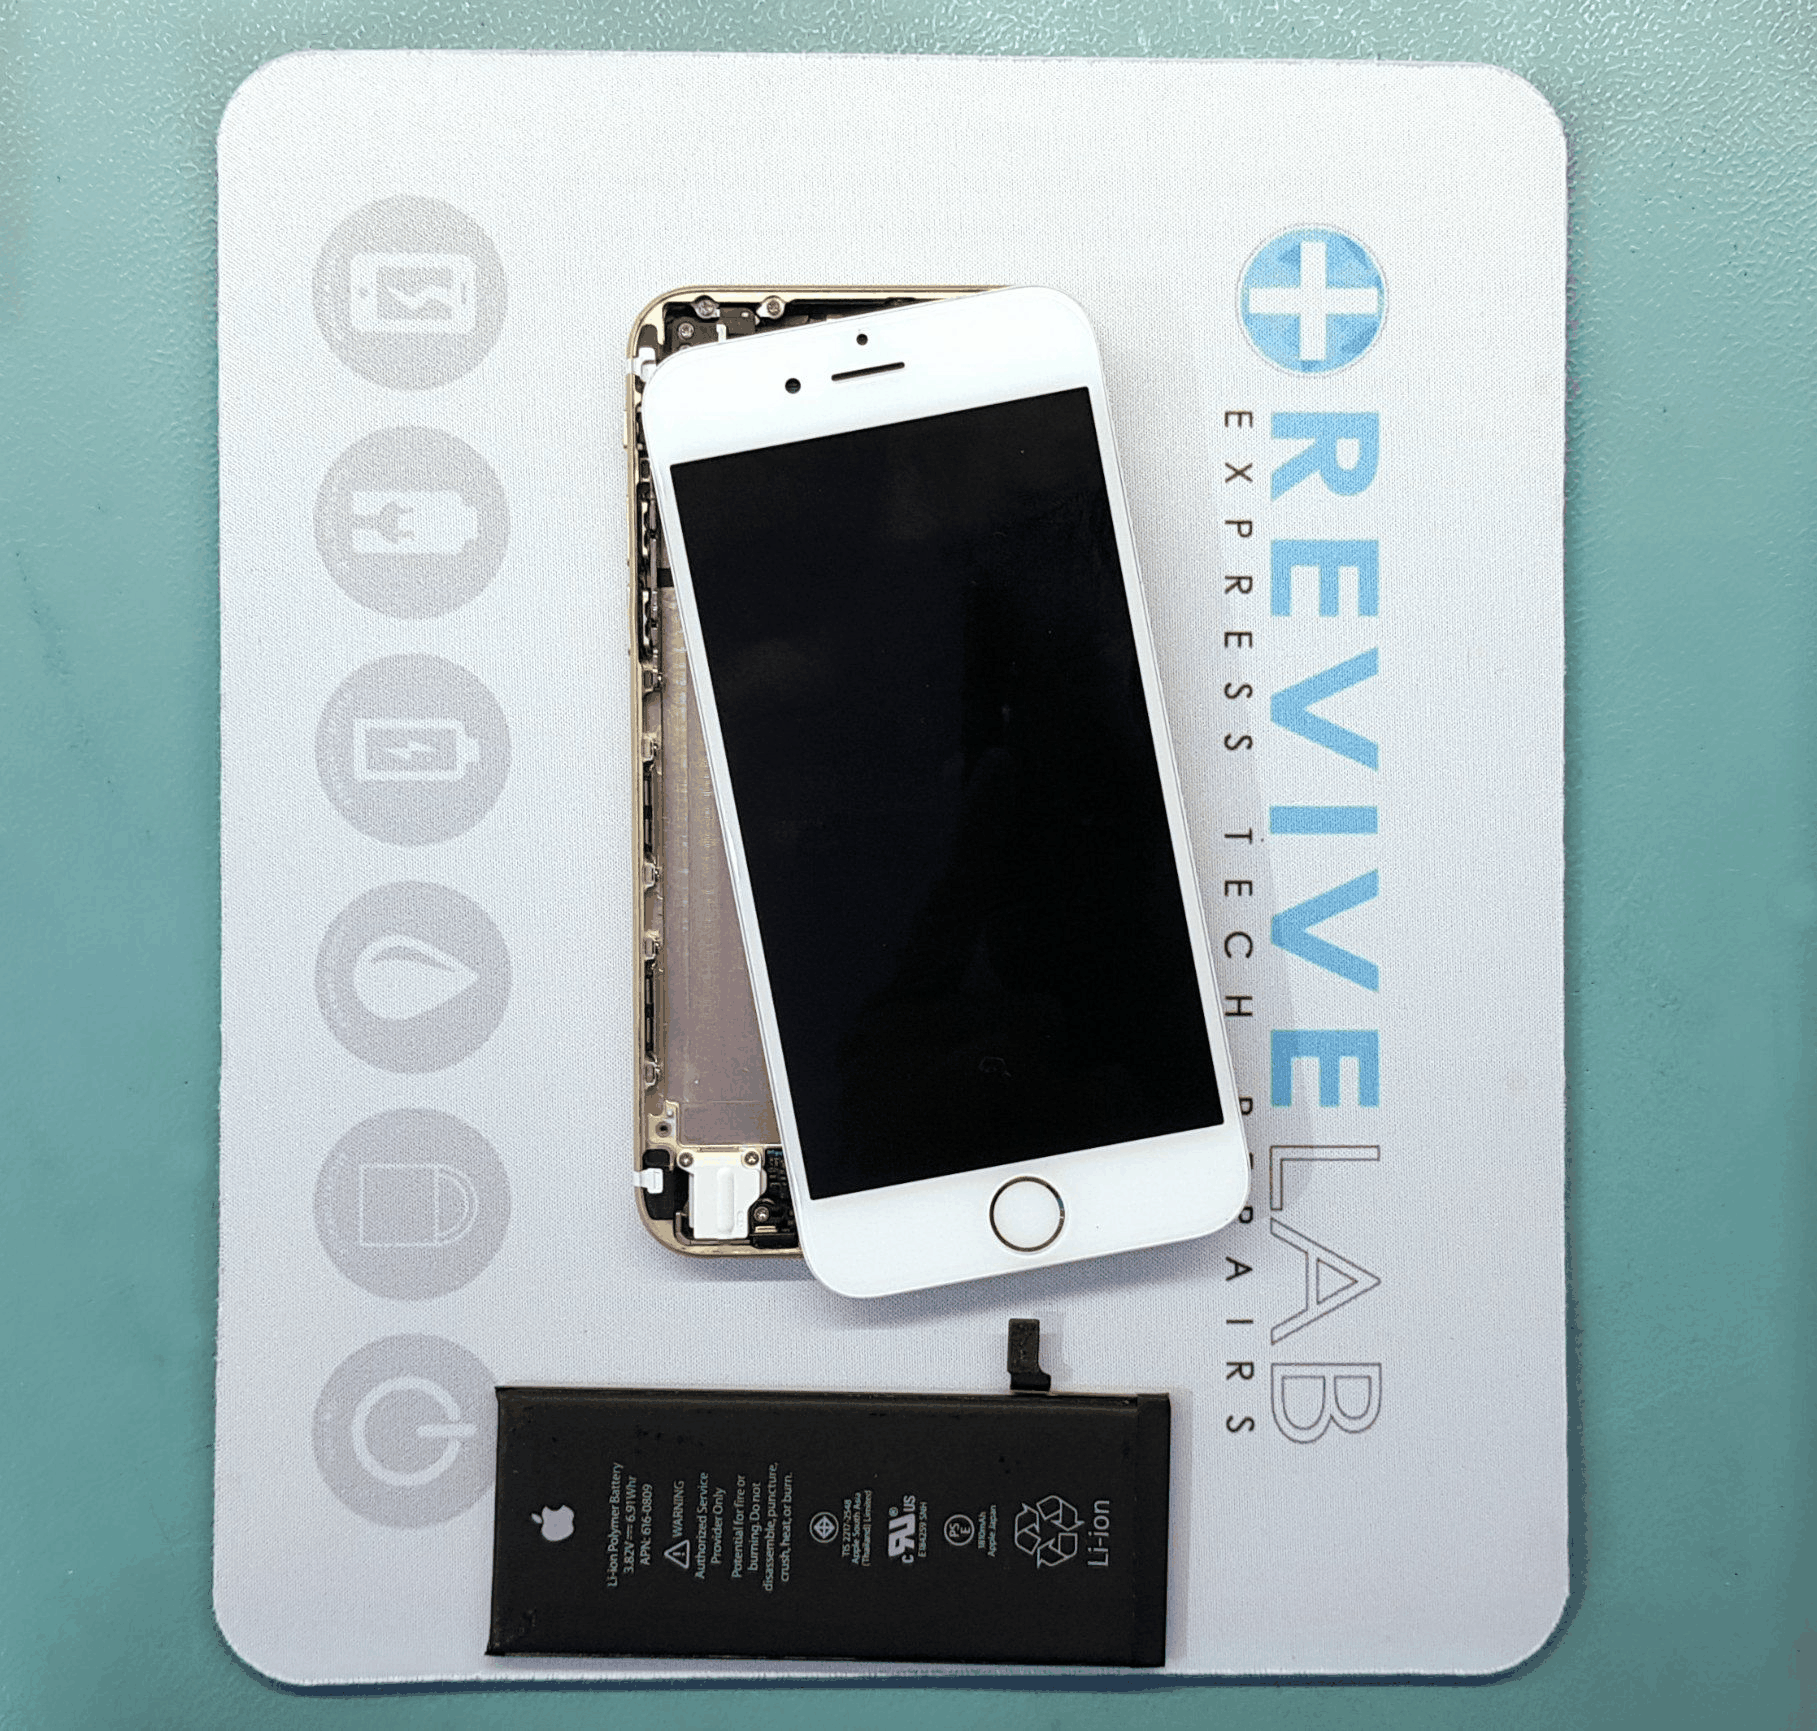 How to Revive an iPhone?